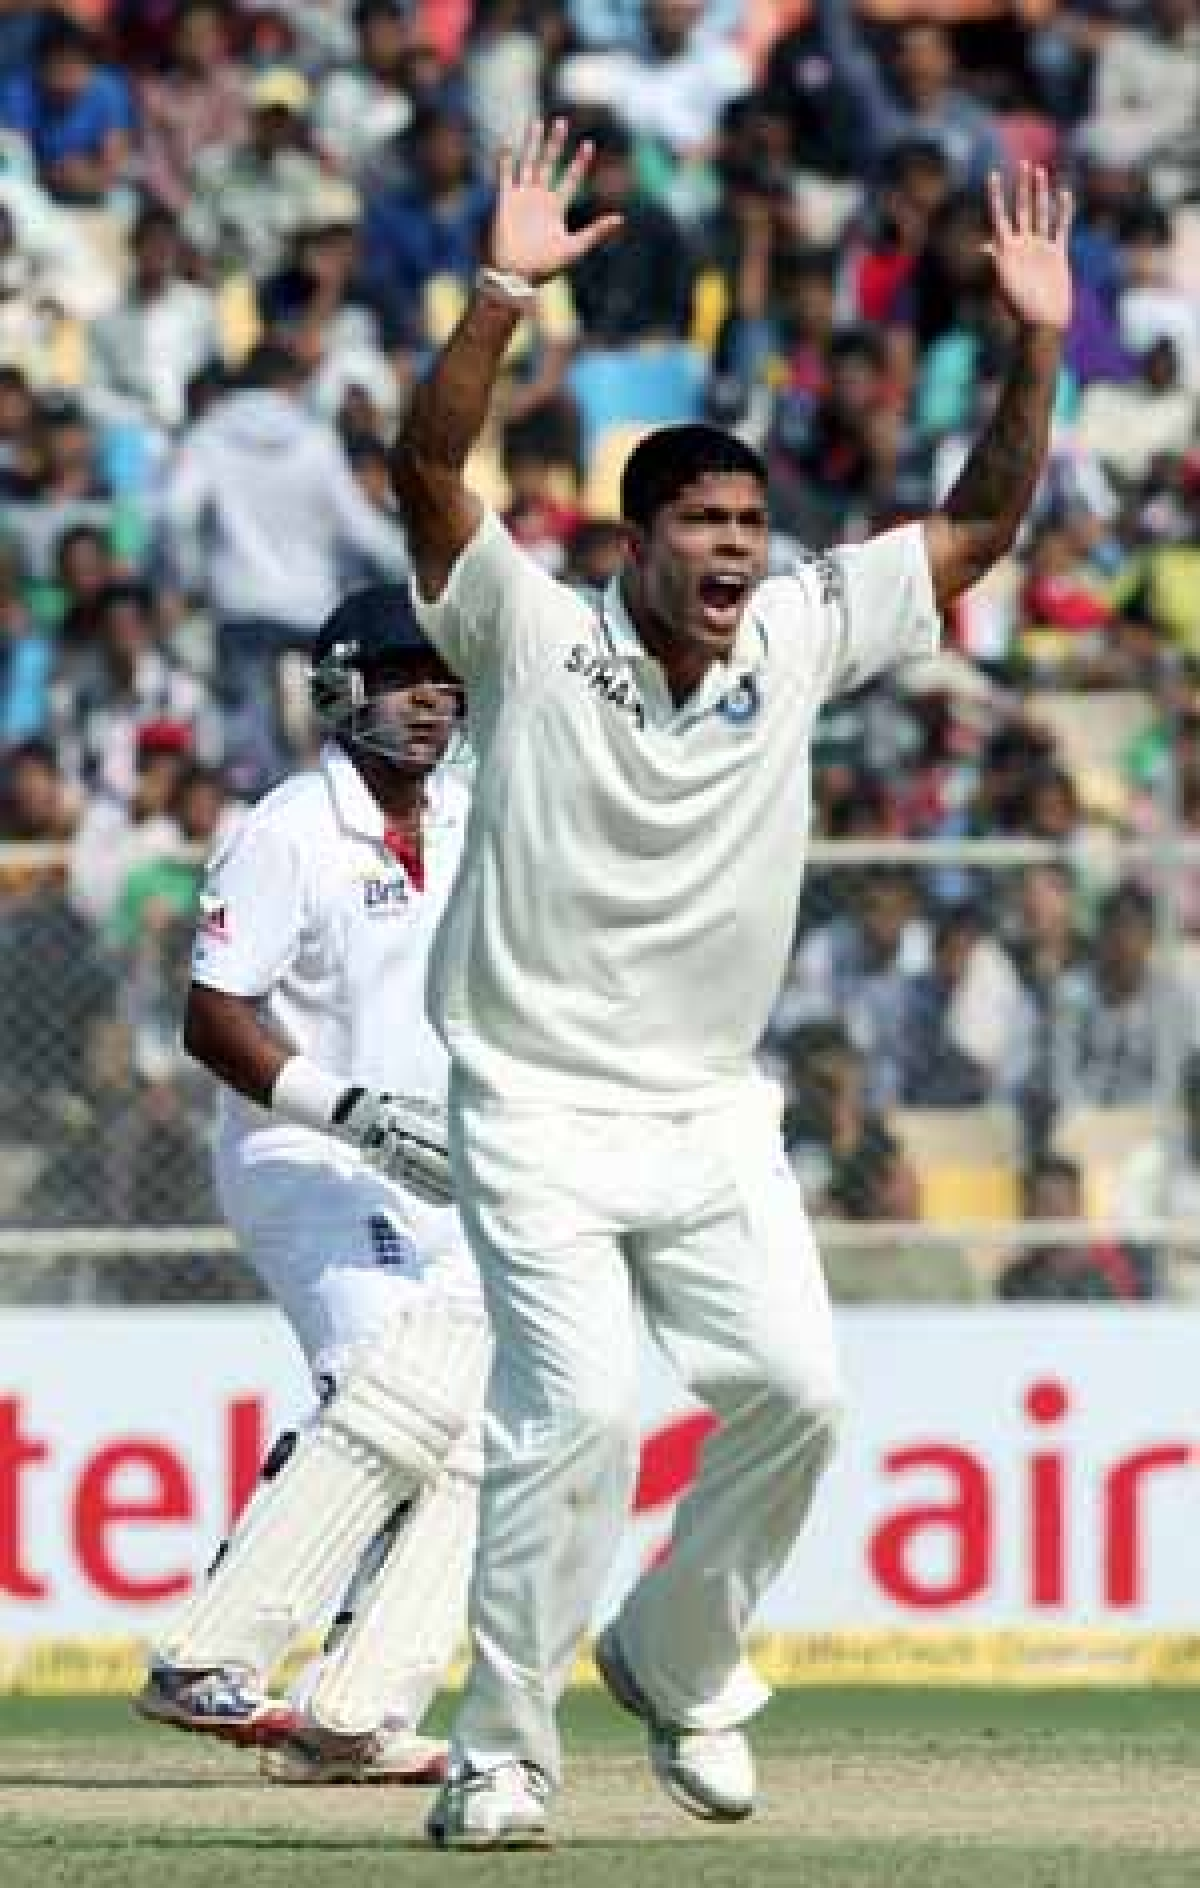 Tough time ahead for bowlers, says Umesh